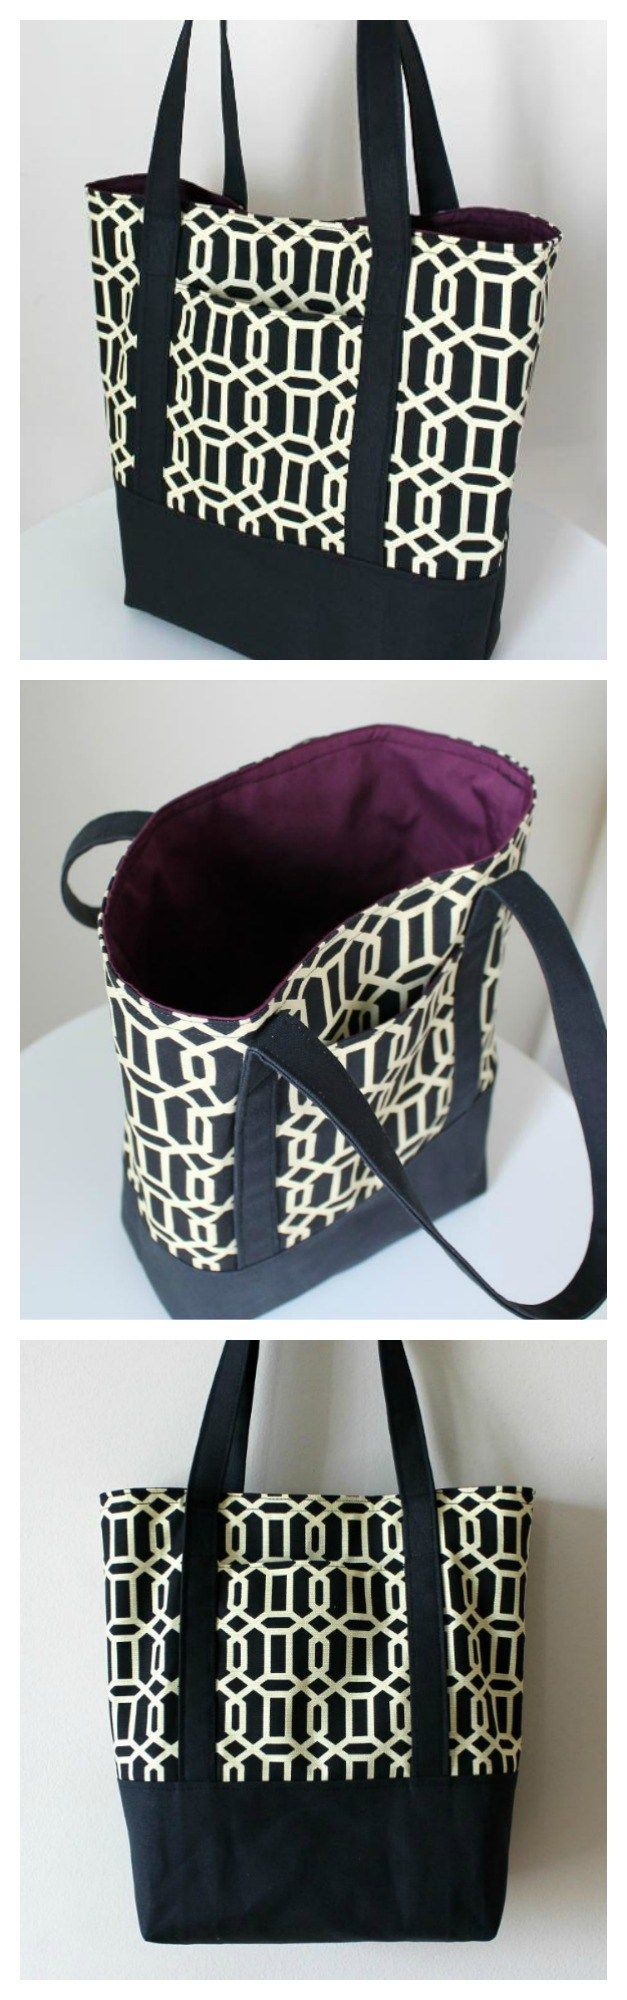 Lined Canvas Tote - free pattern | Free pattern, Tote bag and Tutorials